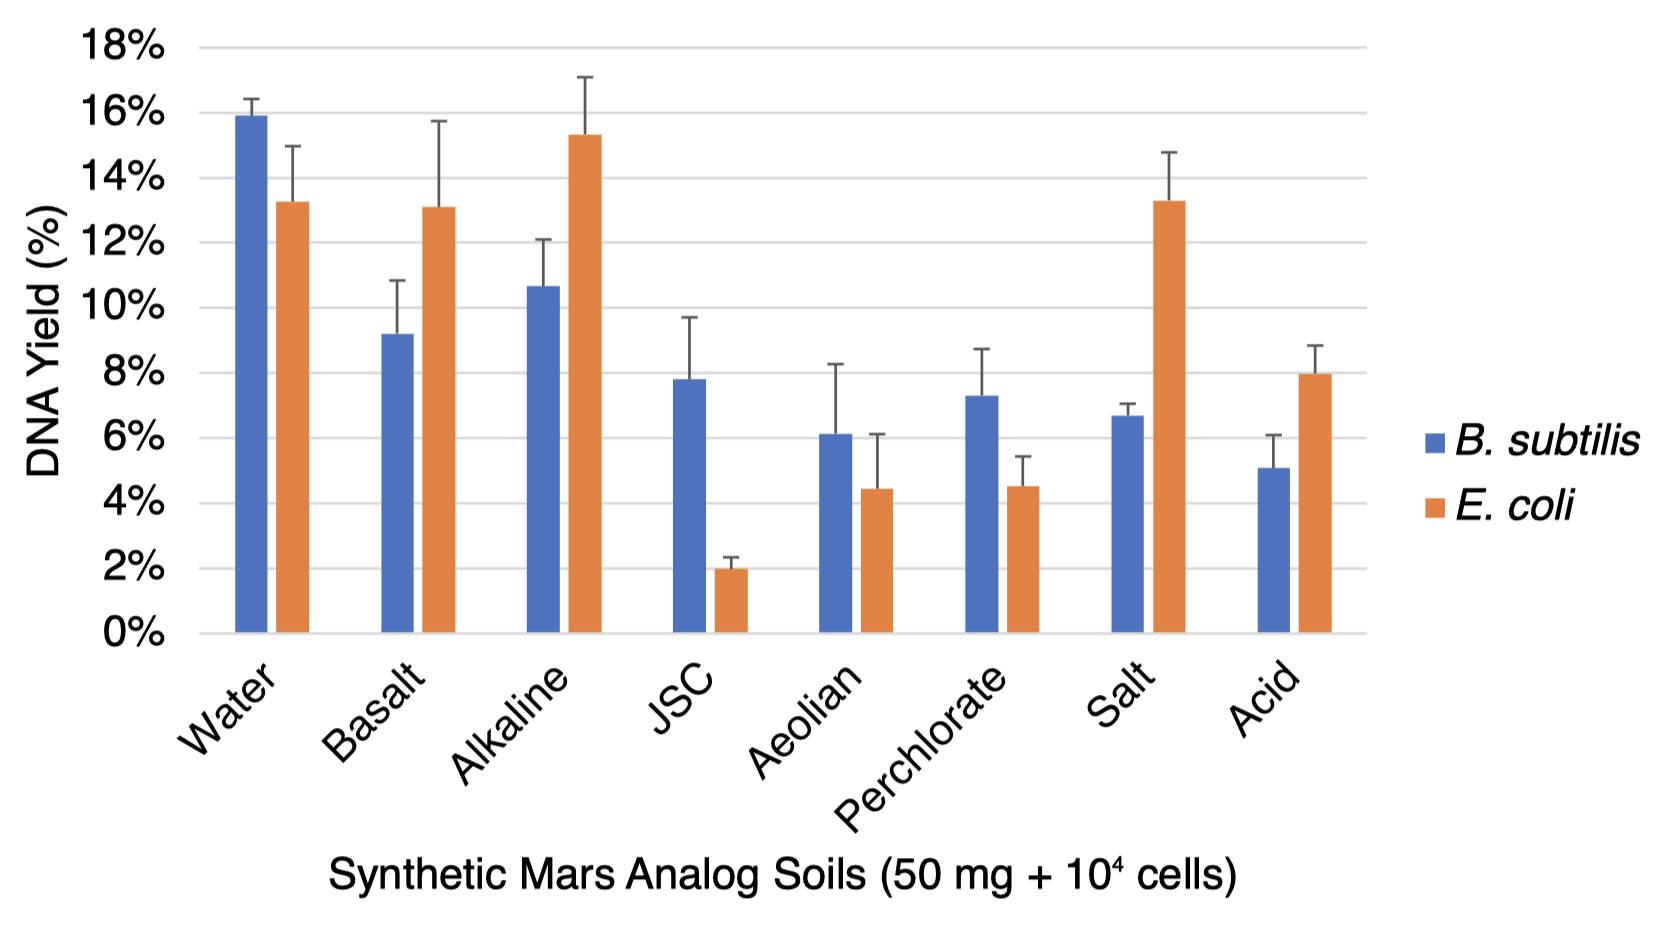 Modified extractions of spore and vegetative DNA from Mars analog soils. Our results indicate that a combination of desalting and completive binders is an adequate strategy for achieving our extraction goals (standard error shown, n = 3).